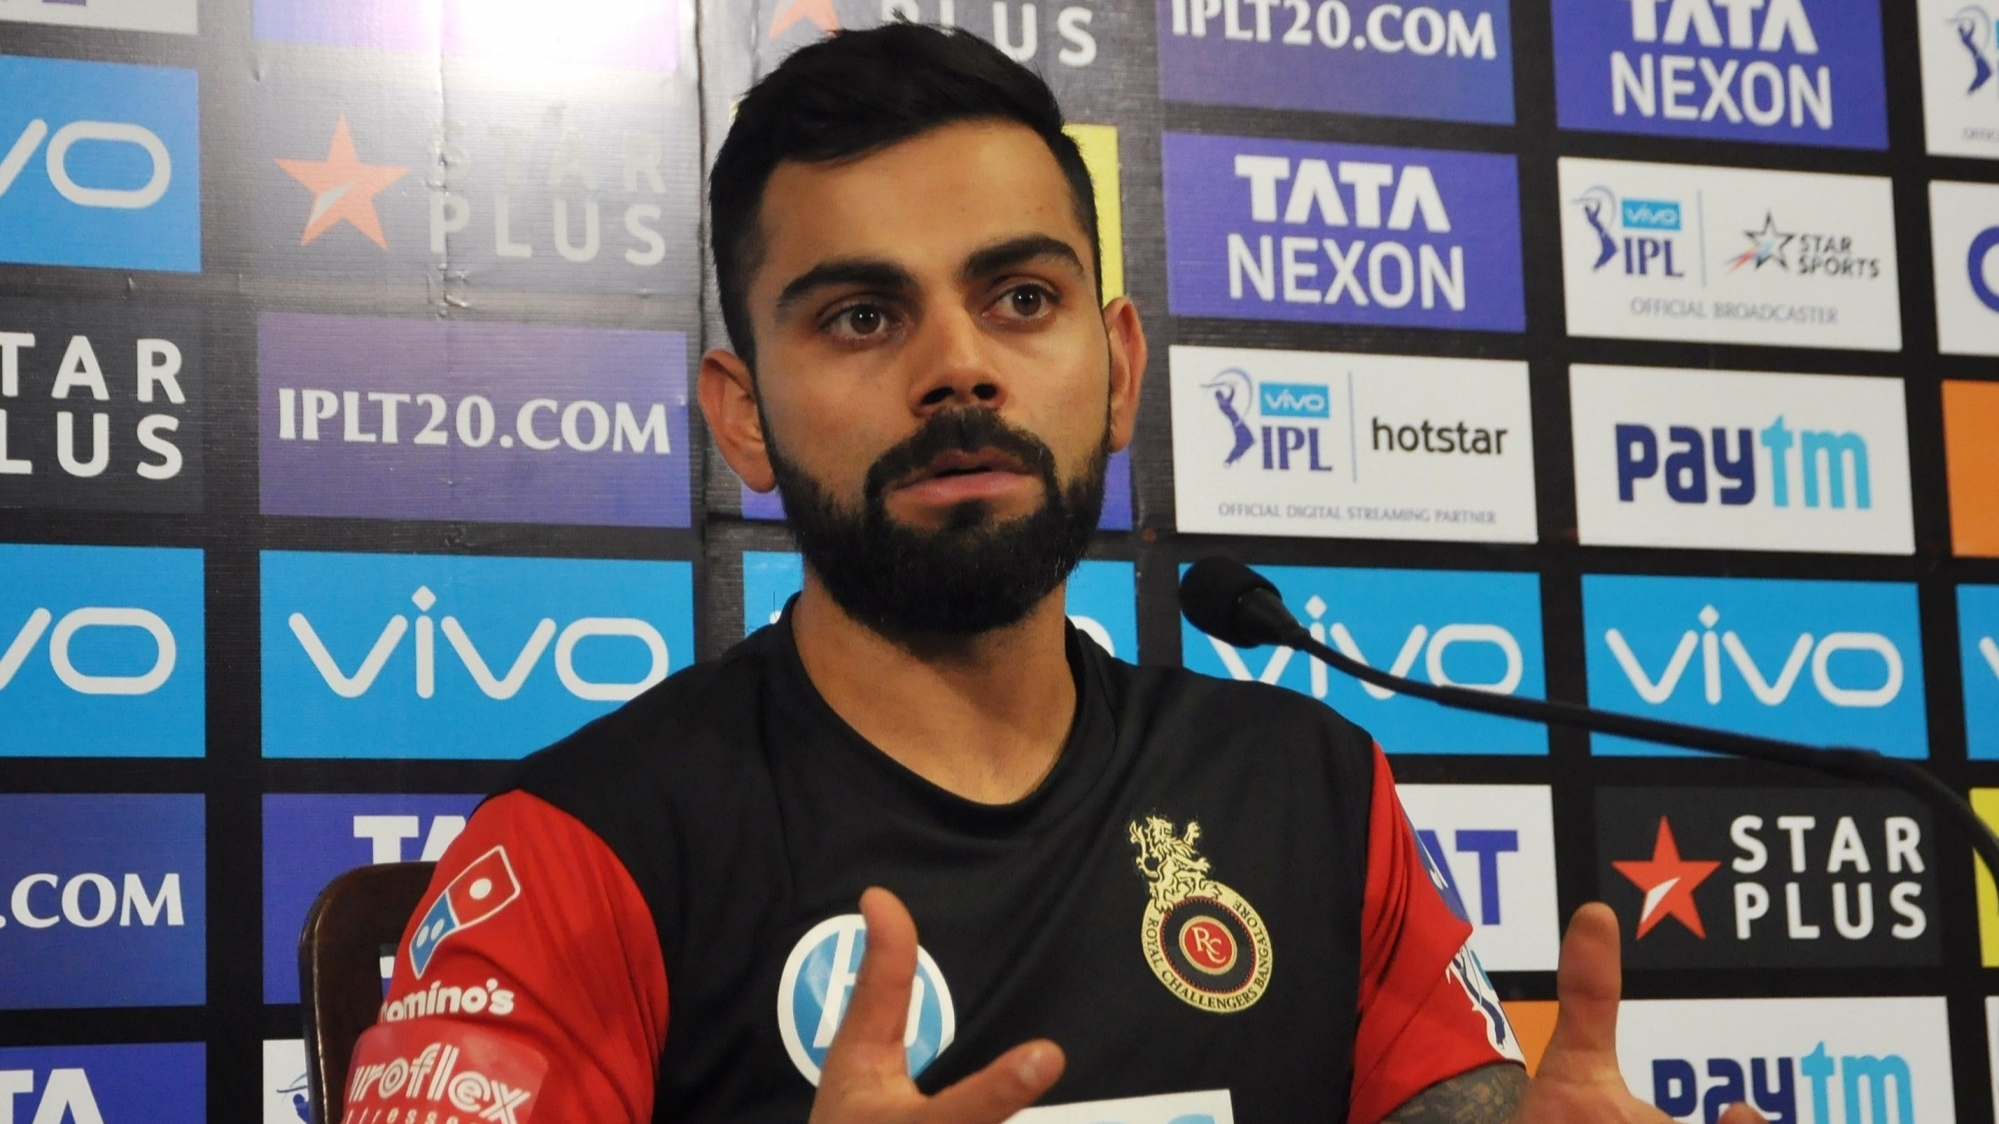 IPL 2018: RCB skipper Virat Kohli ready to bat at number 3, giving up his opening spot